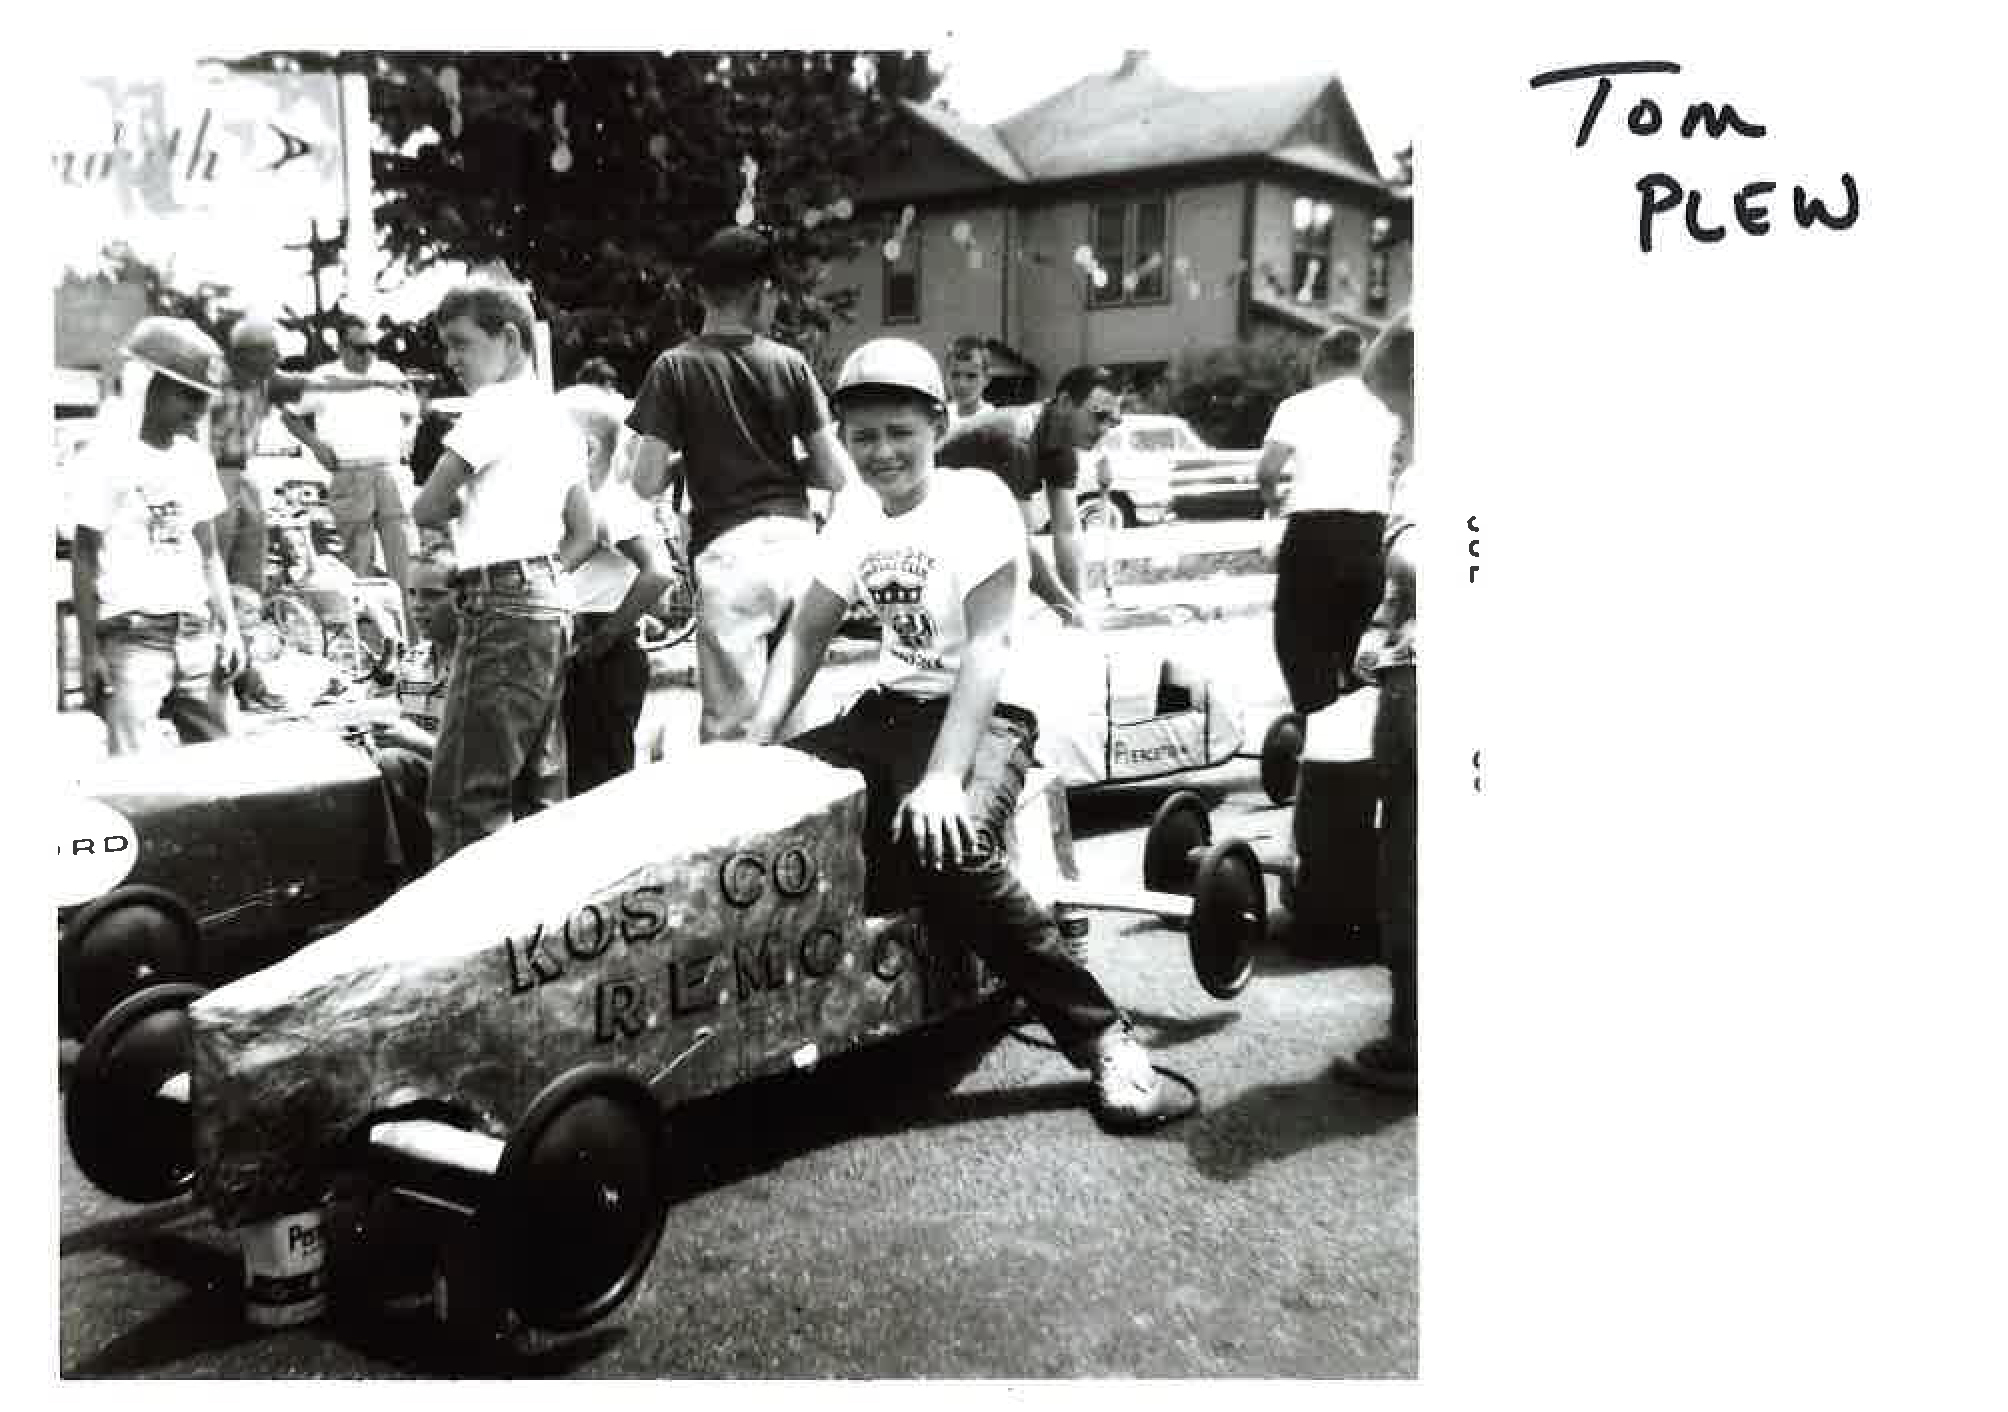 Tom Plew in soap box derby car.